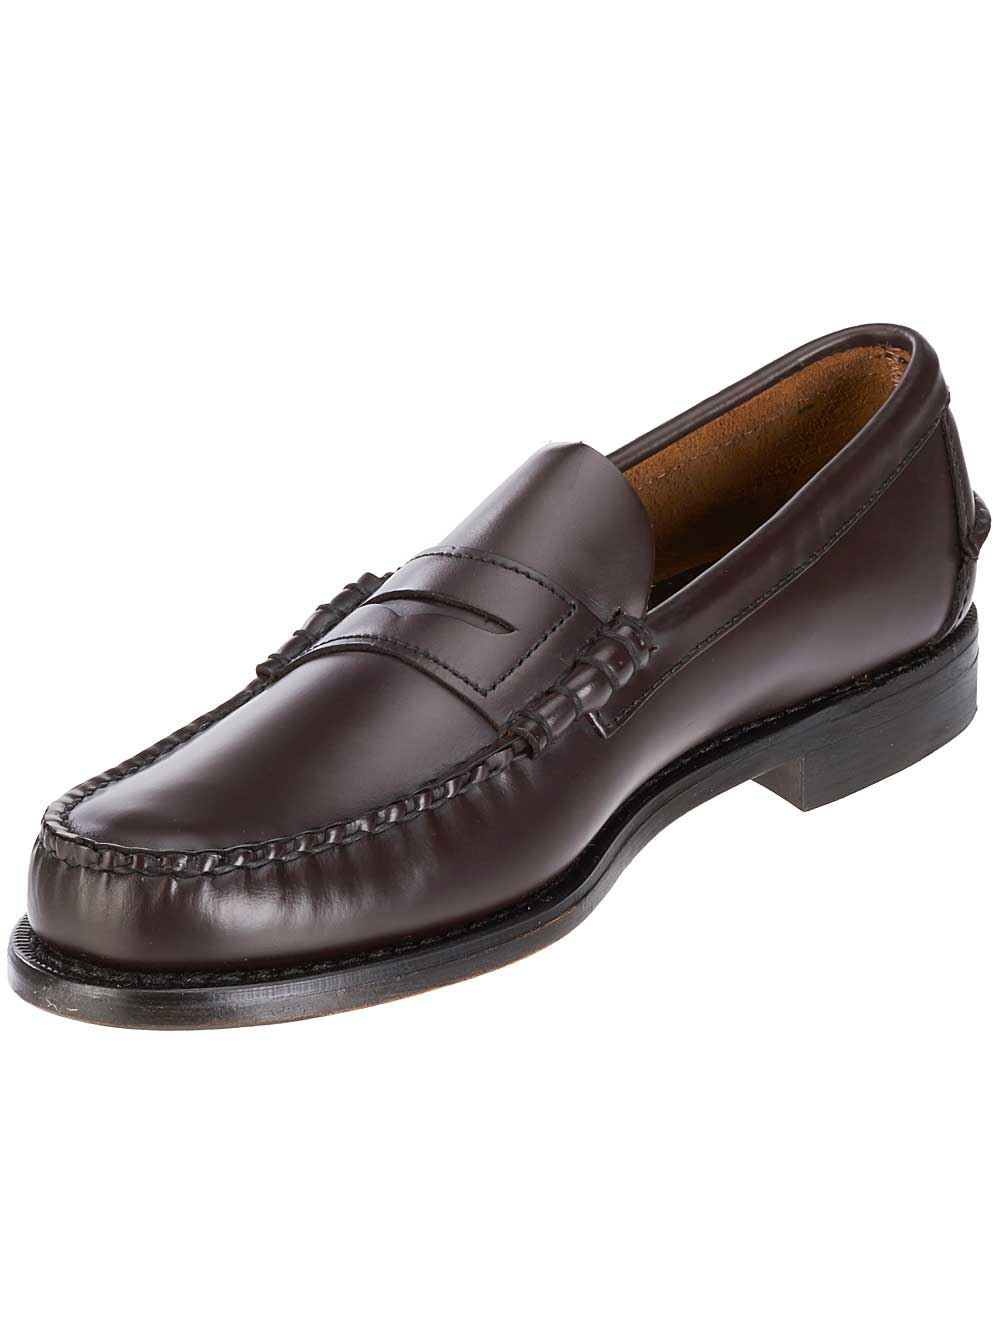 classic leather penny loafers shoes